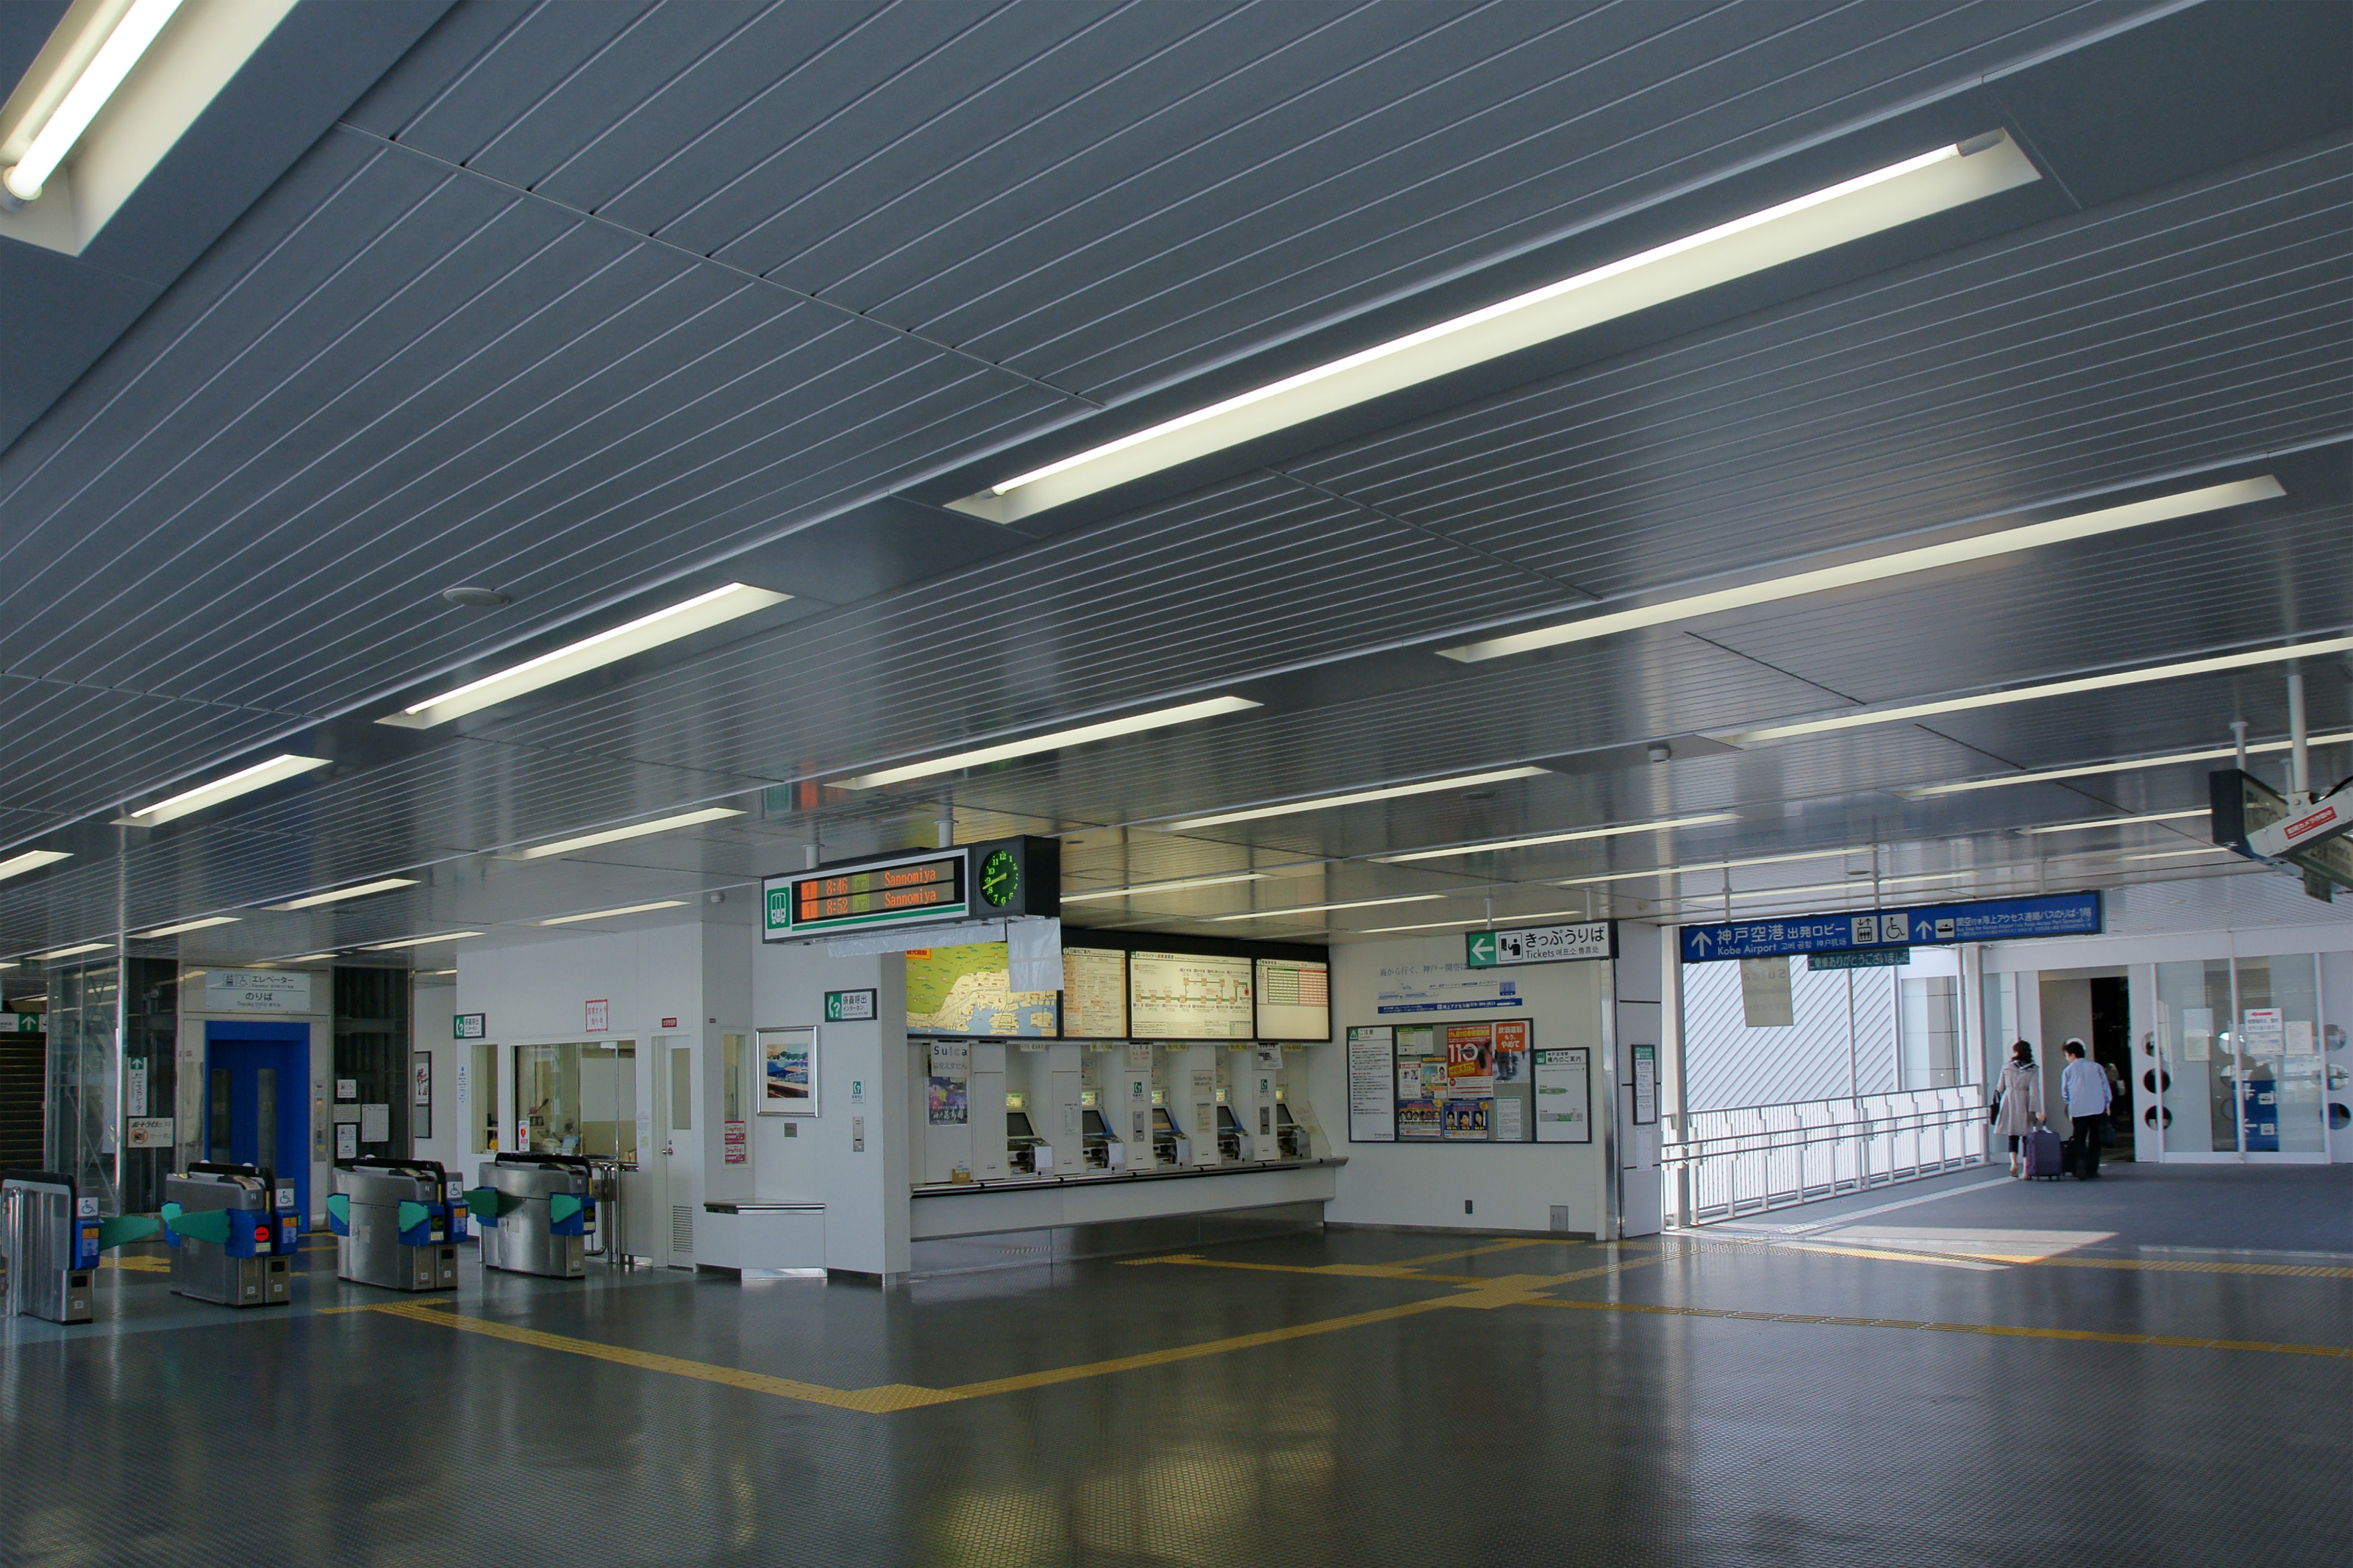 https://upload.wikimedia.org/wikipedia/commons/8/8d/Kobe_Airport_Station01s5s3200.jpg